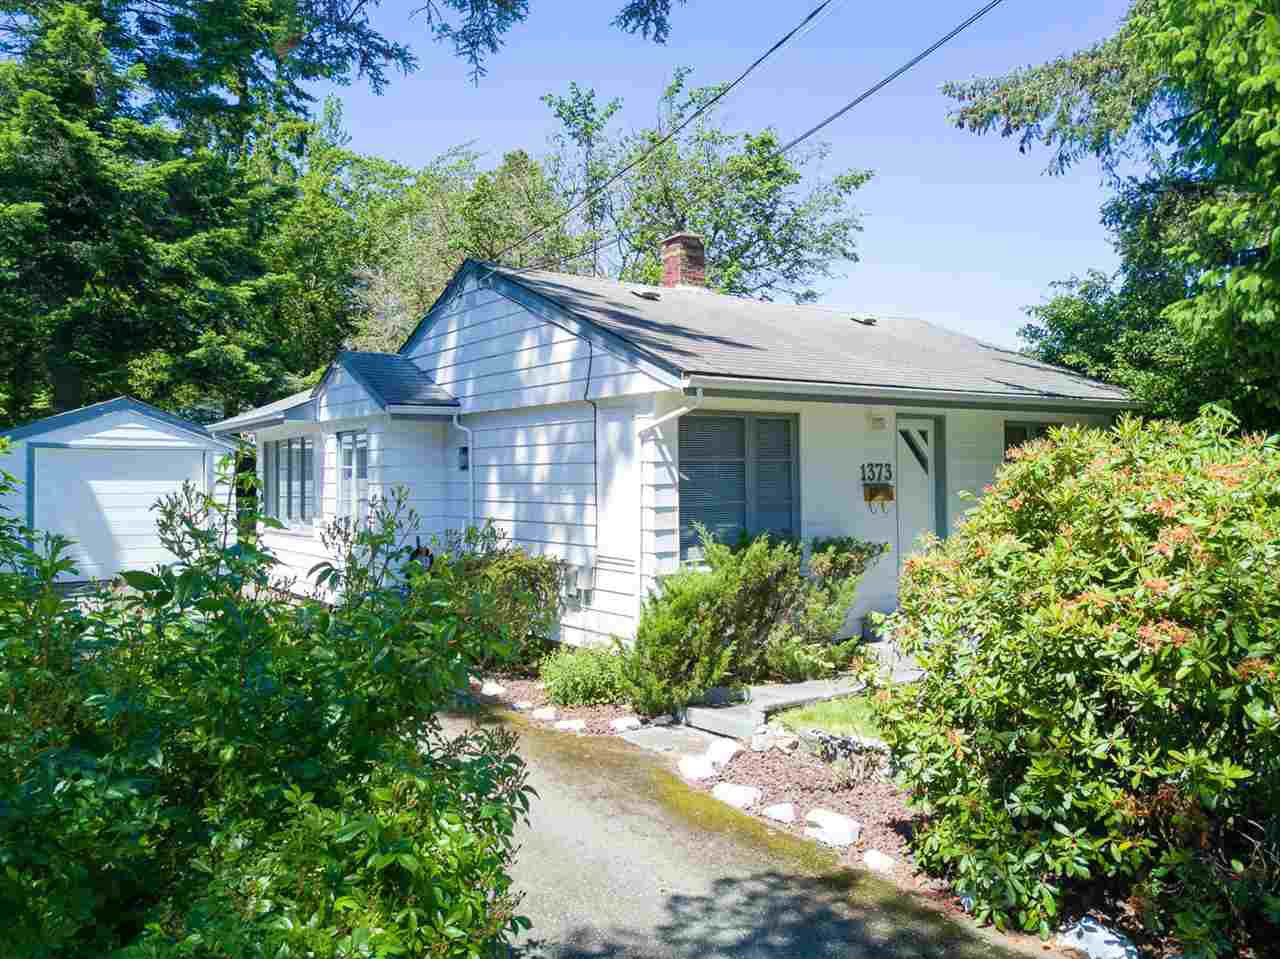 Main Photo: 1373 STAYTE Road: White Rock House for sale (South Surrey White Rock)  : MLS®# R2171871